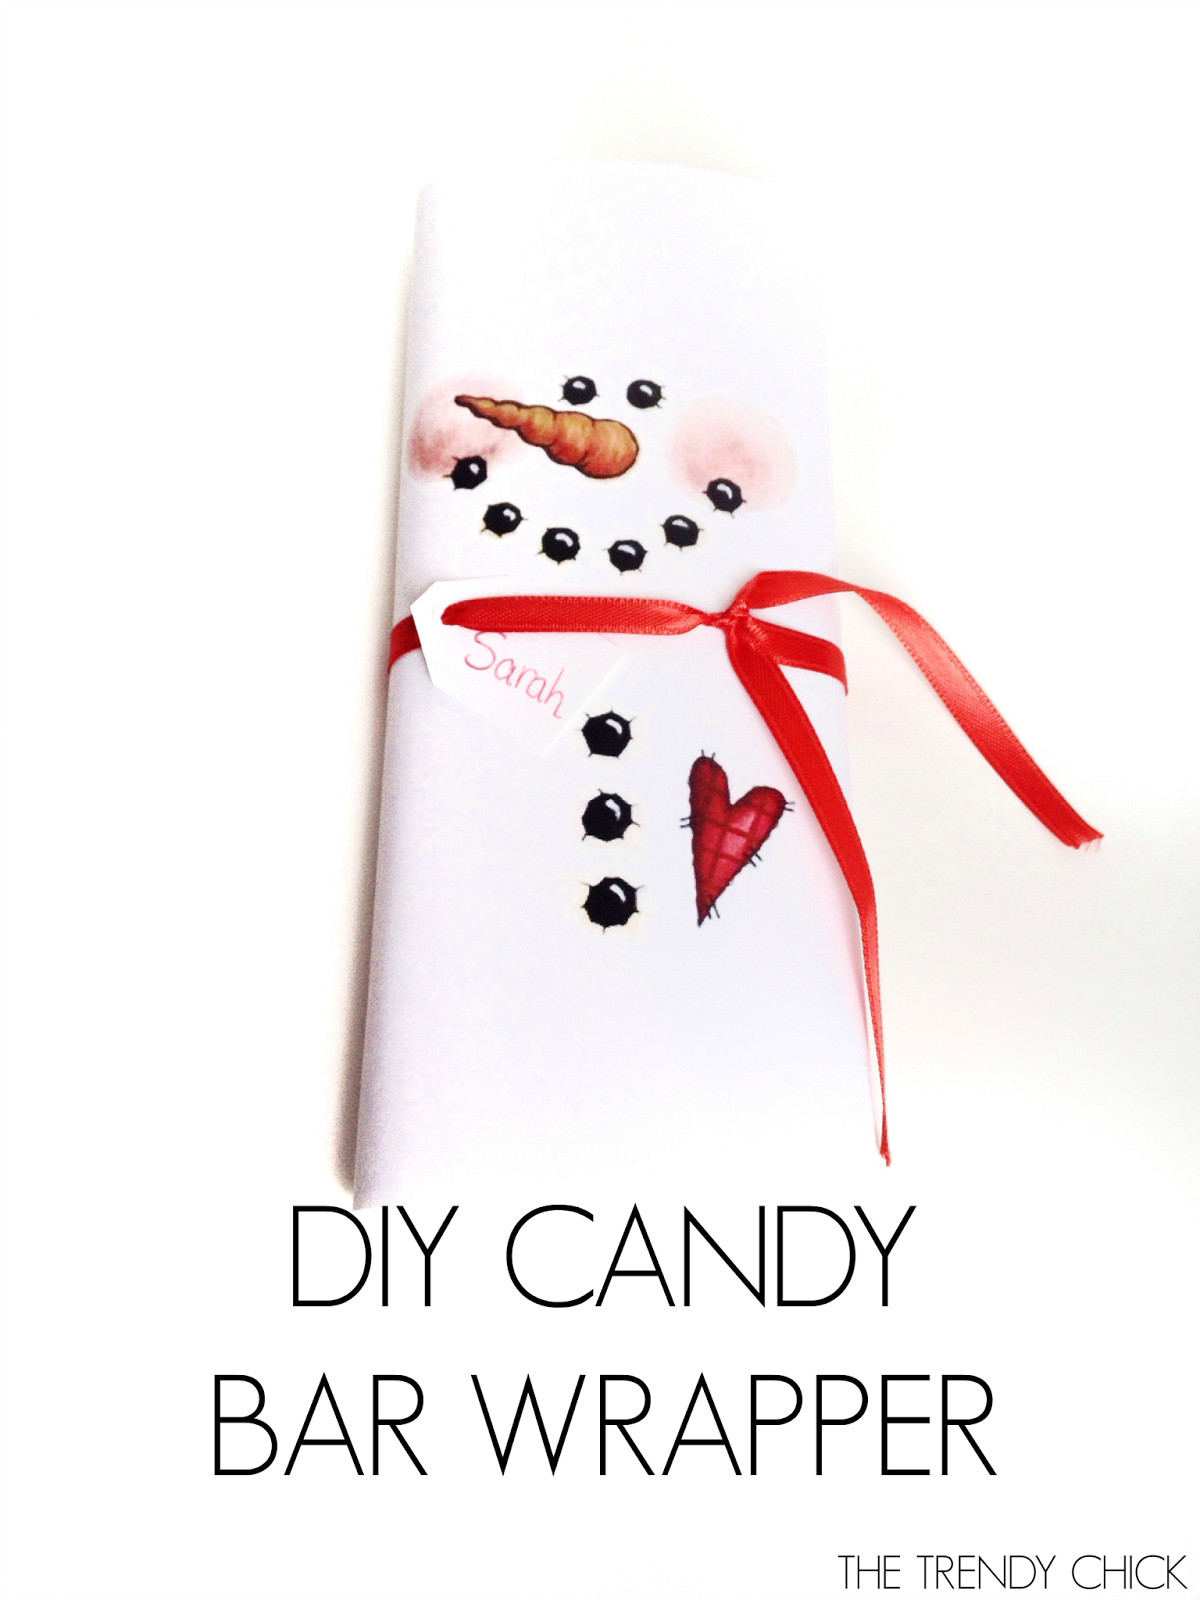 Free Printable Christmas Candy Bar Wrappers  The Trendy Chick 4 Easy DIY Christmas Gifts